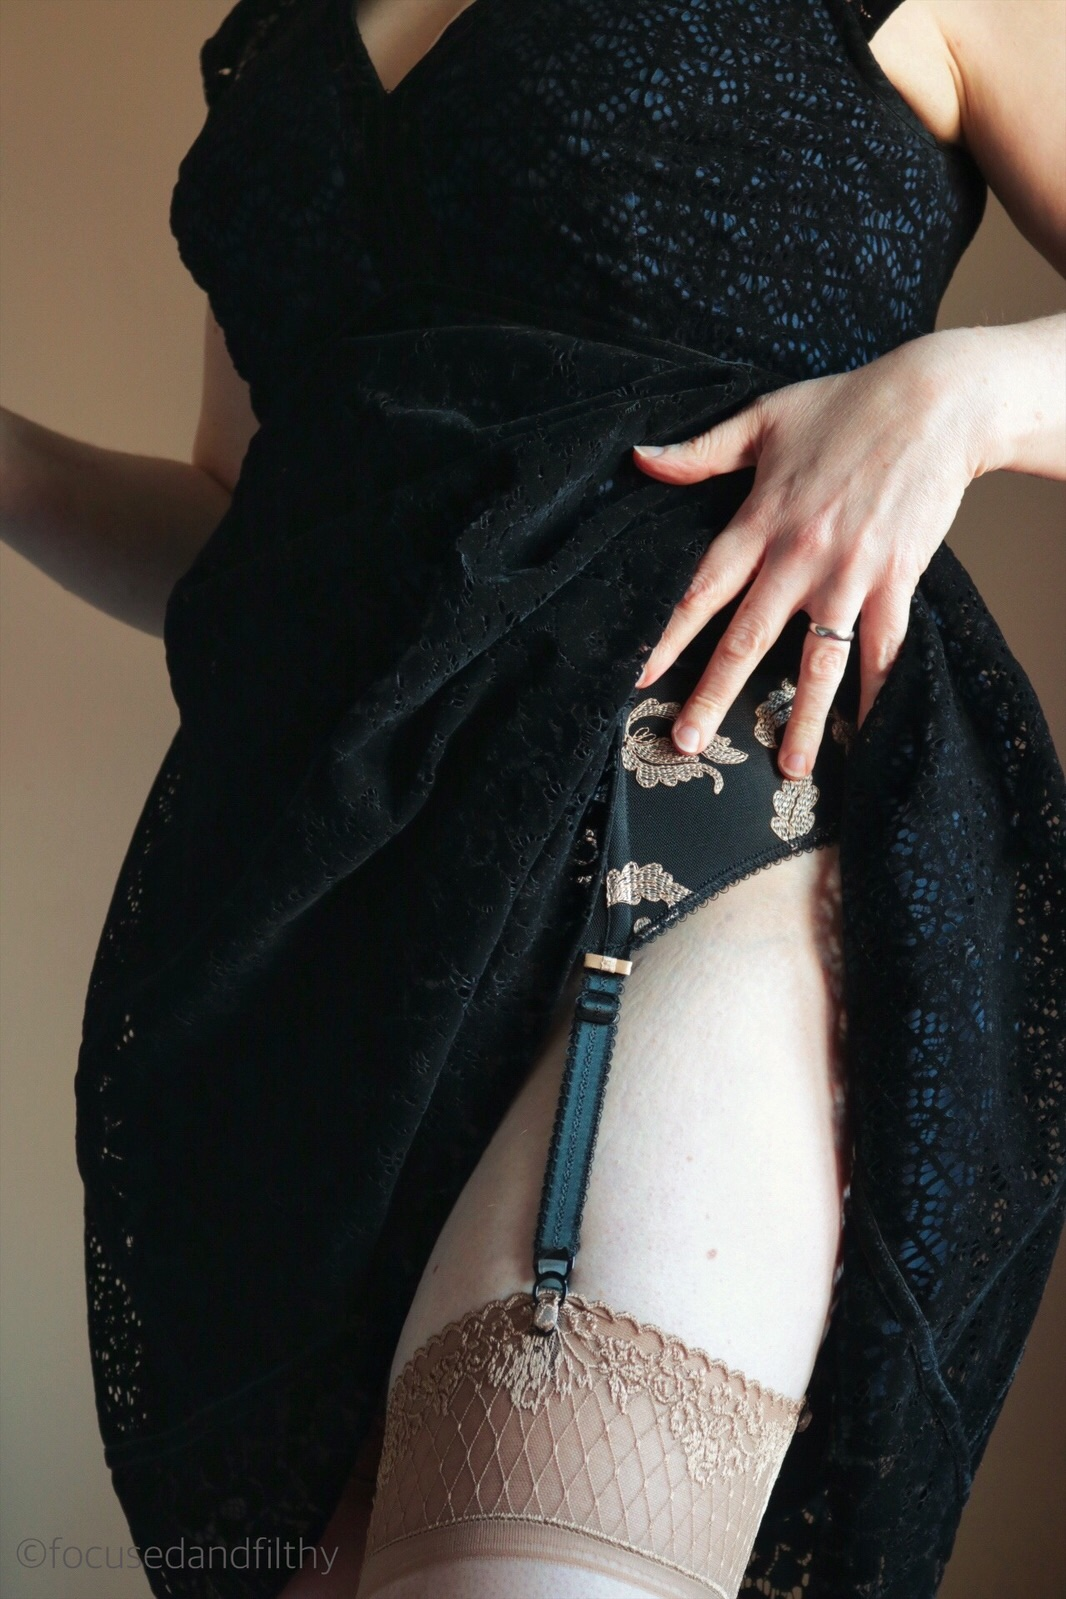 Colour image of a short black dress being lifted to show a stocking top and black suspender belt